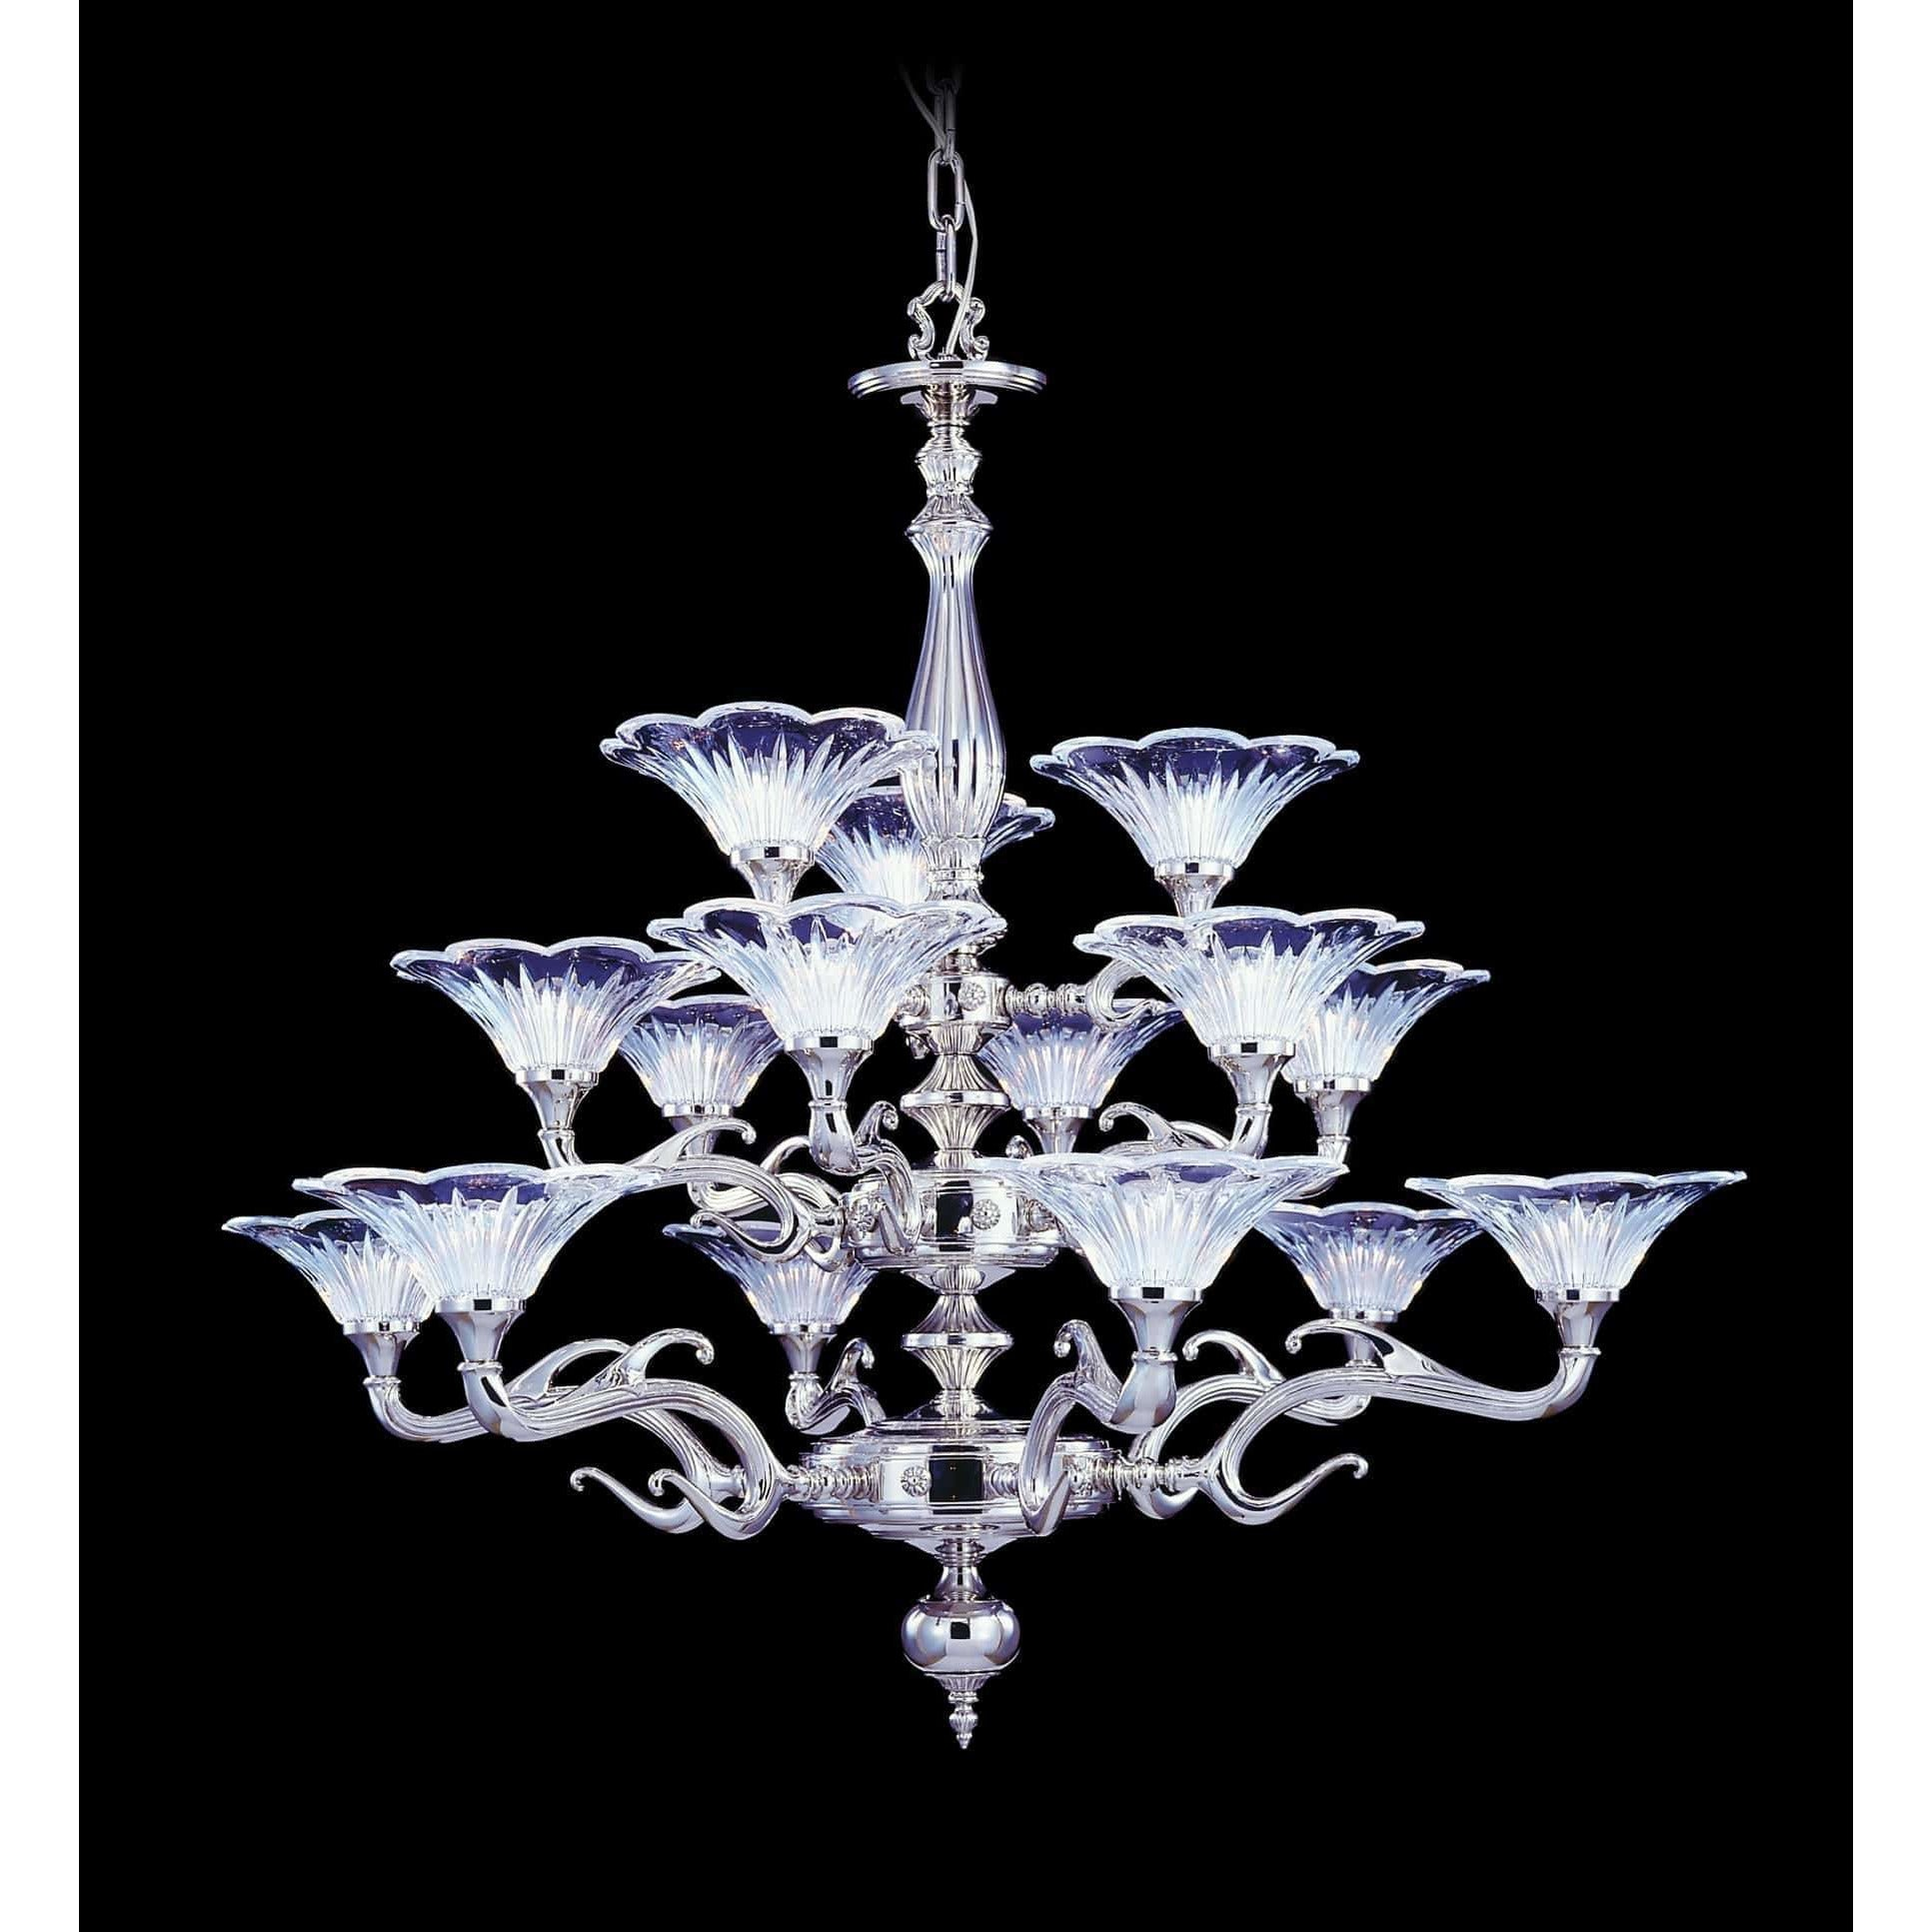 Framburg Foyer Chandeliers Polished Silver 15-Light Polished Silver Geneva Foyer Chandelier by Framburg 8623